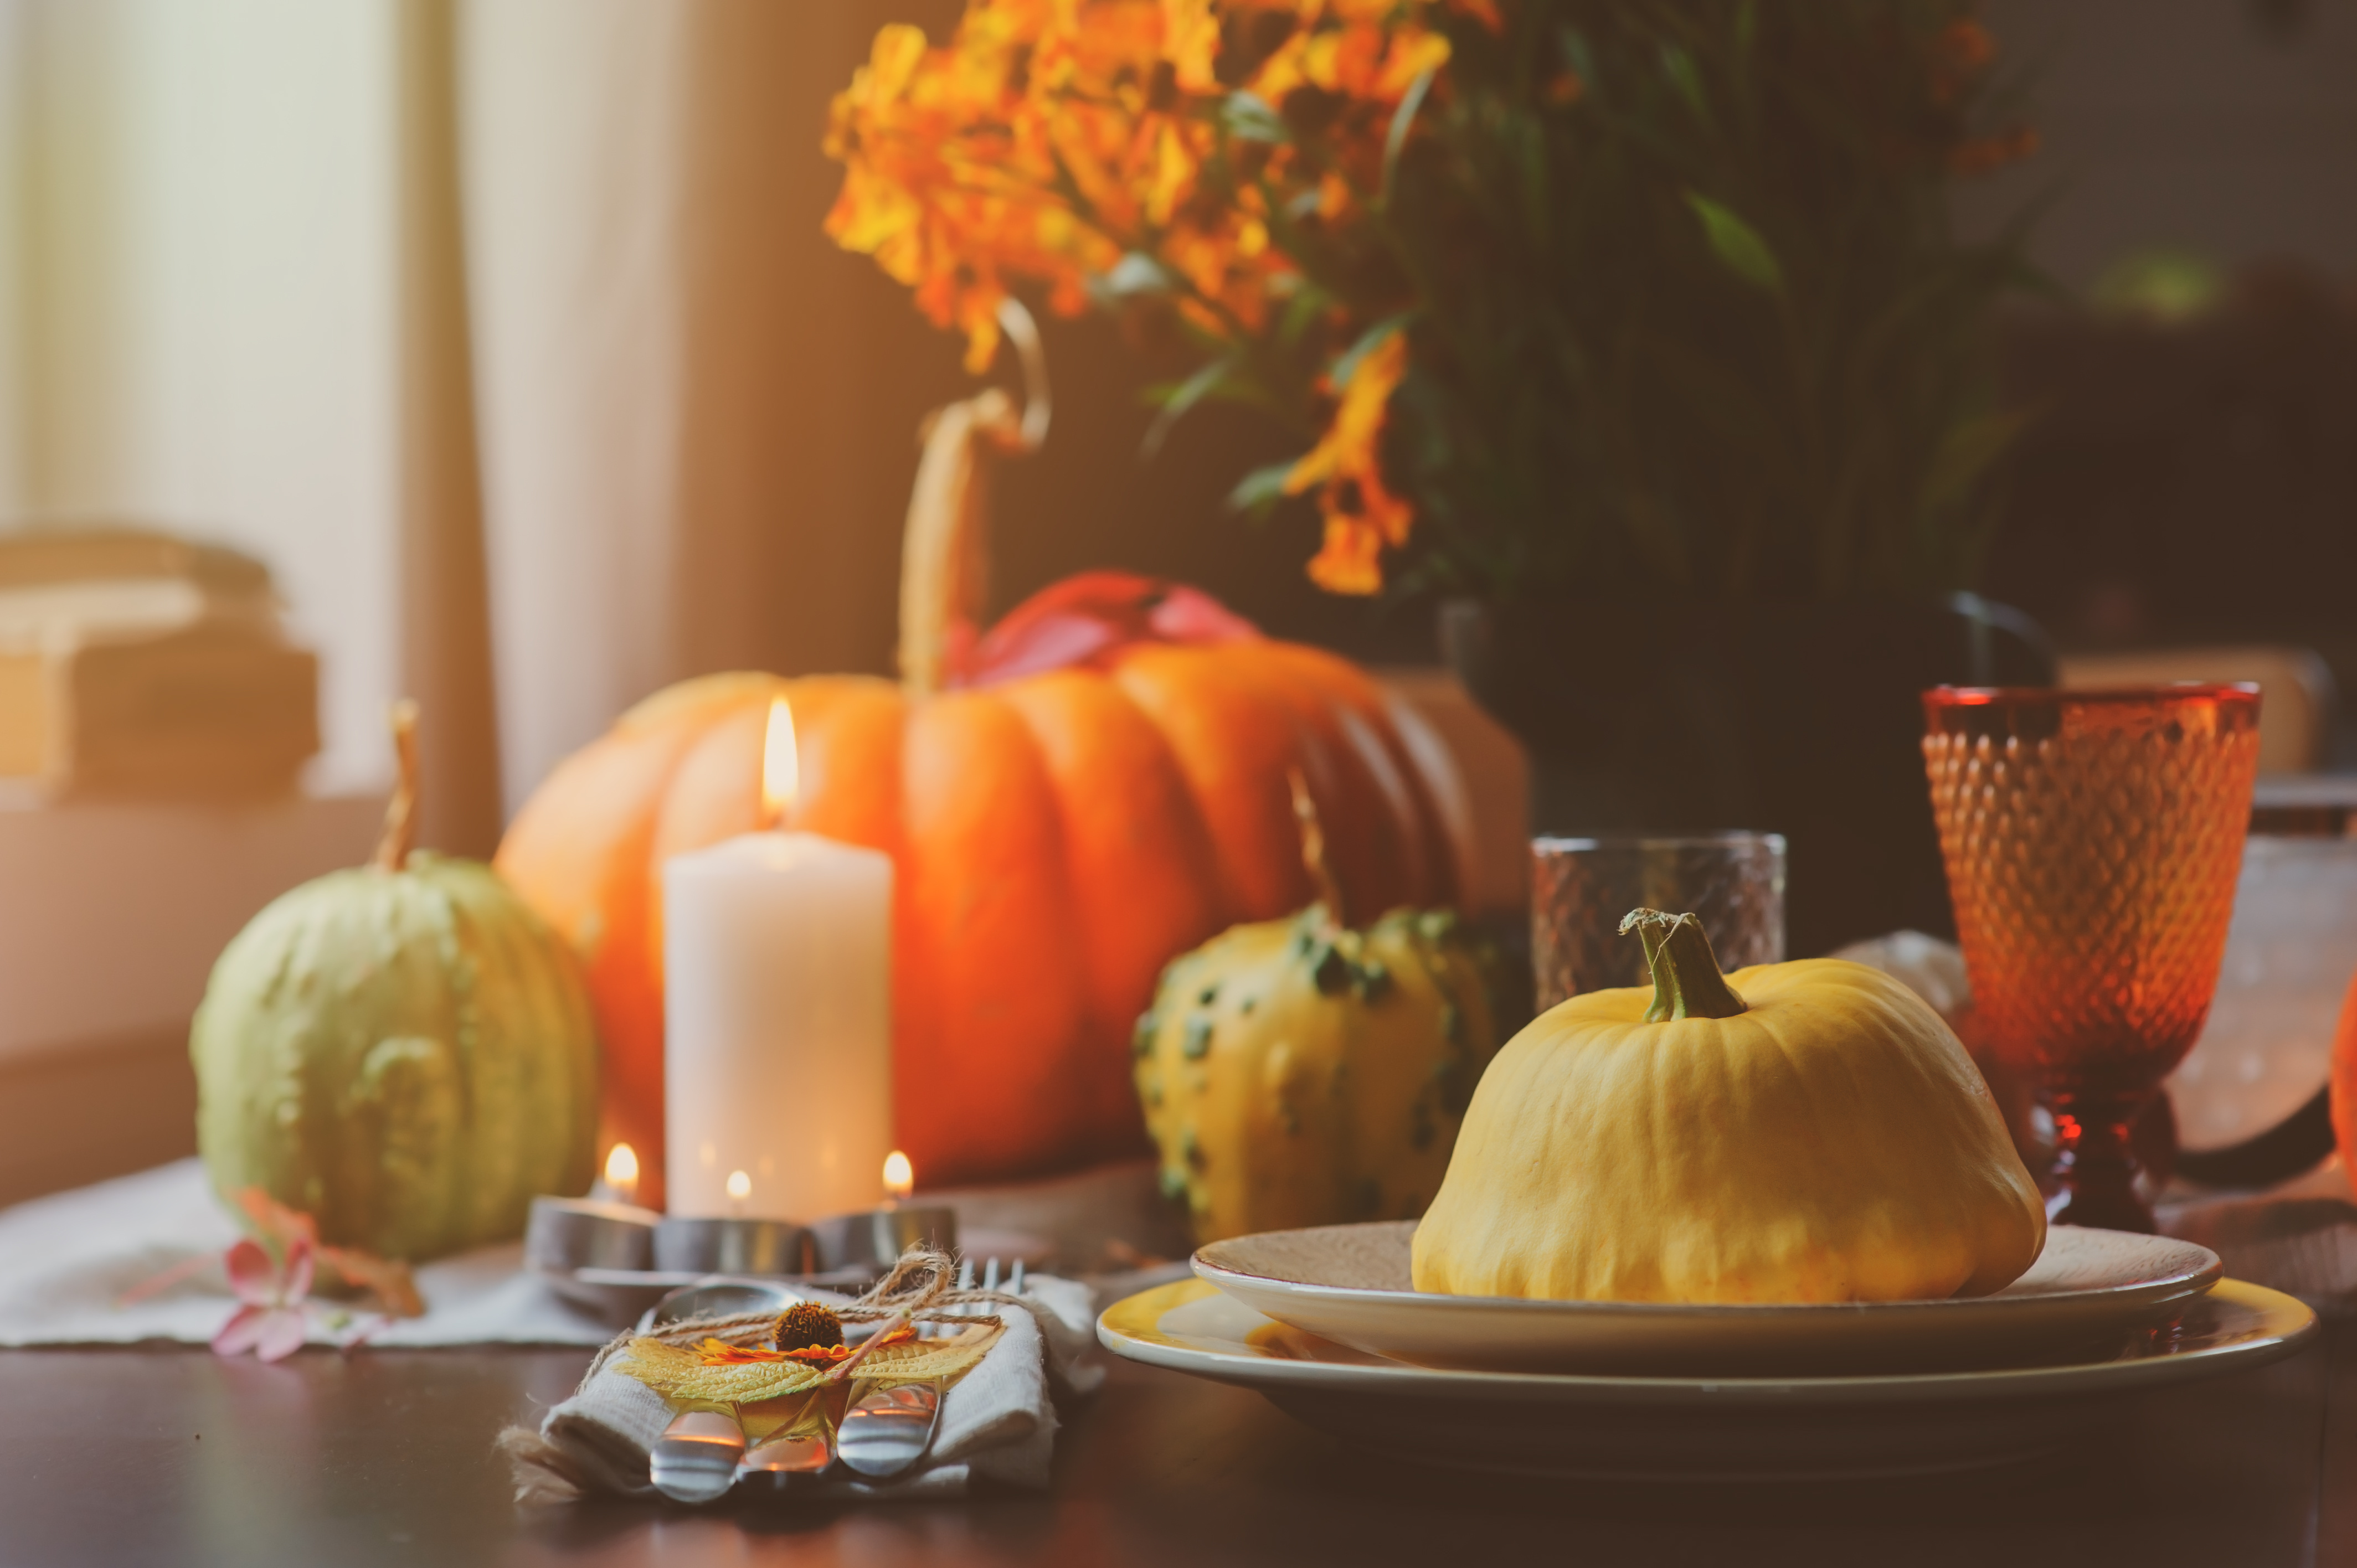 autumn traditional table setting for Thanksgiving or Halloween, with candles squash and pumpkins.